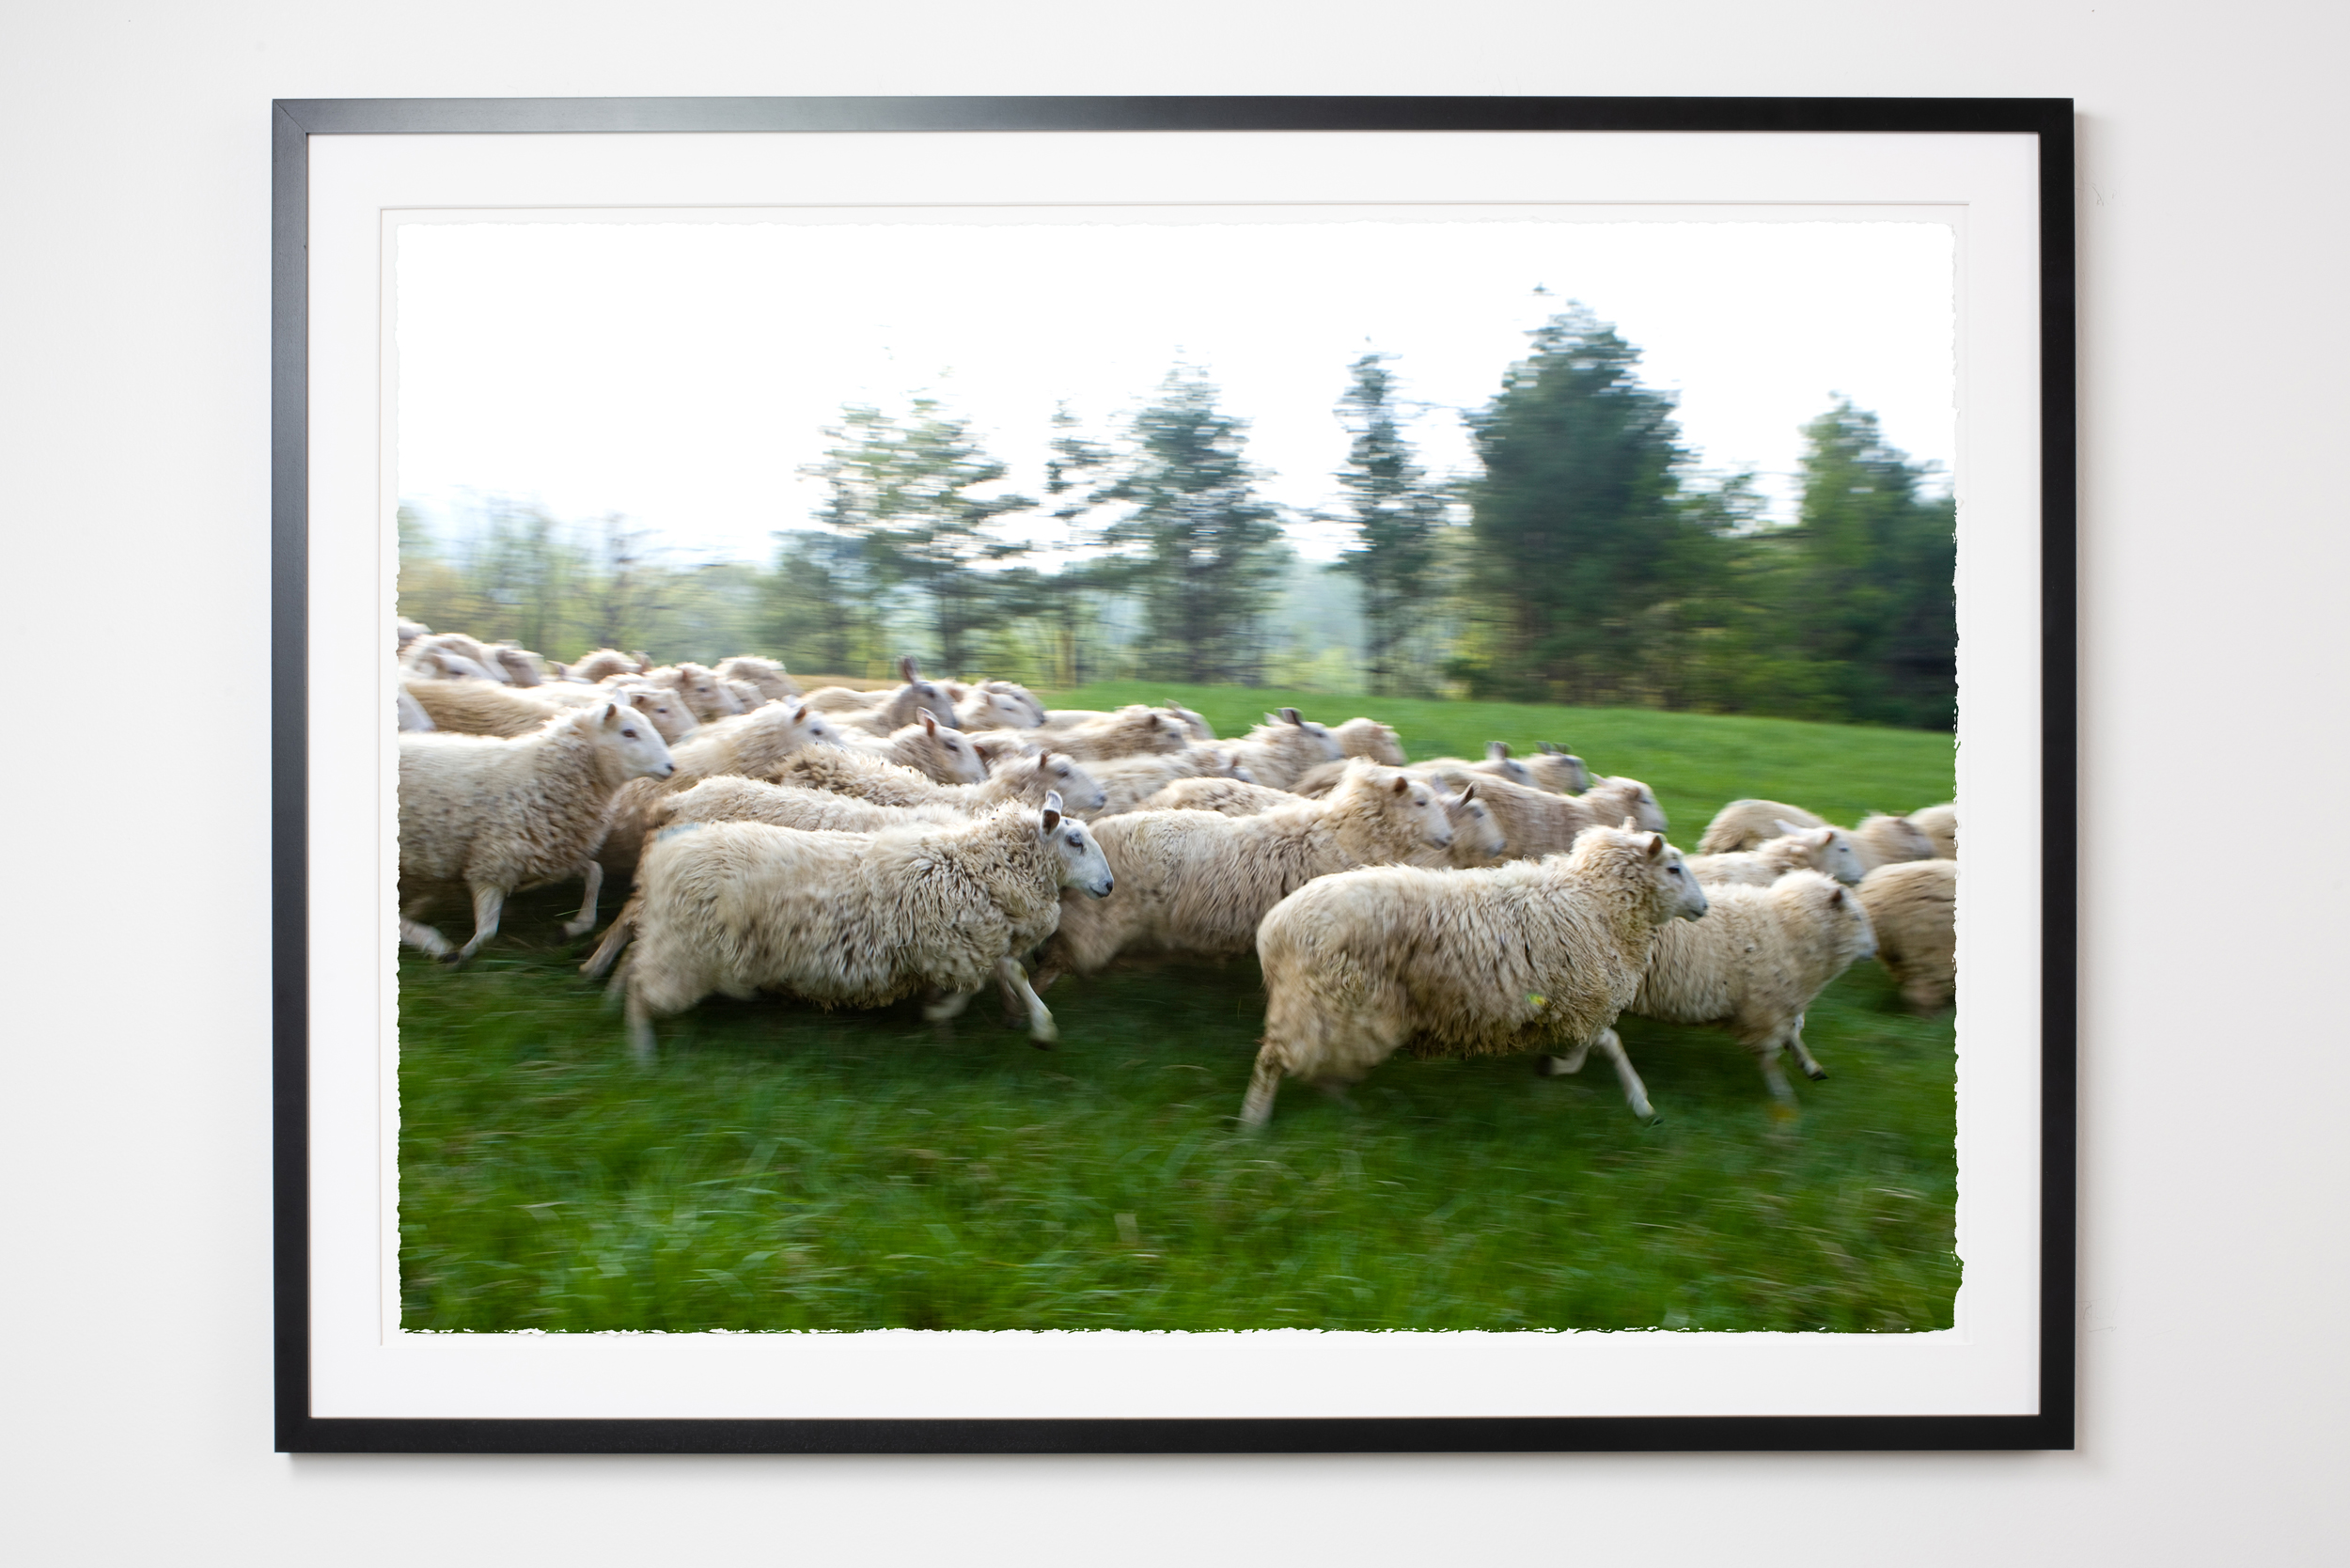 583Molly M Peterson Framed Print Heartwork HudsonValley.jpg